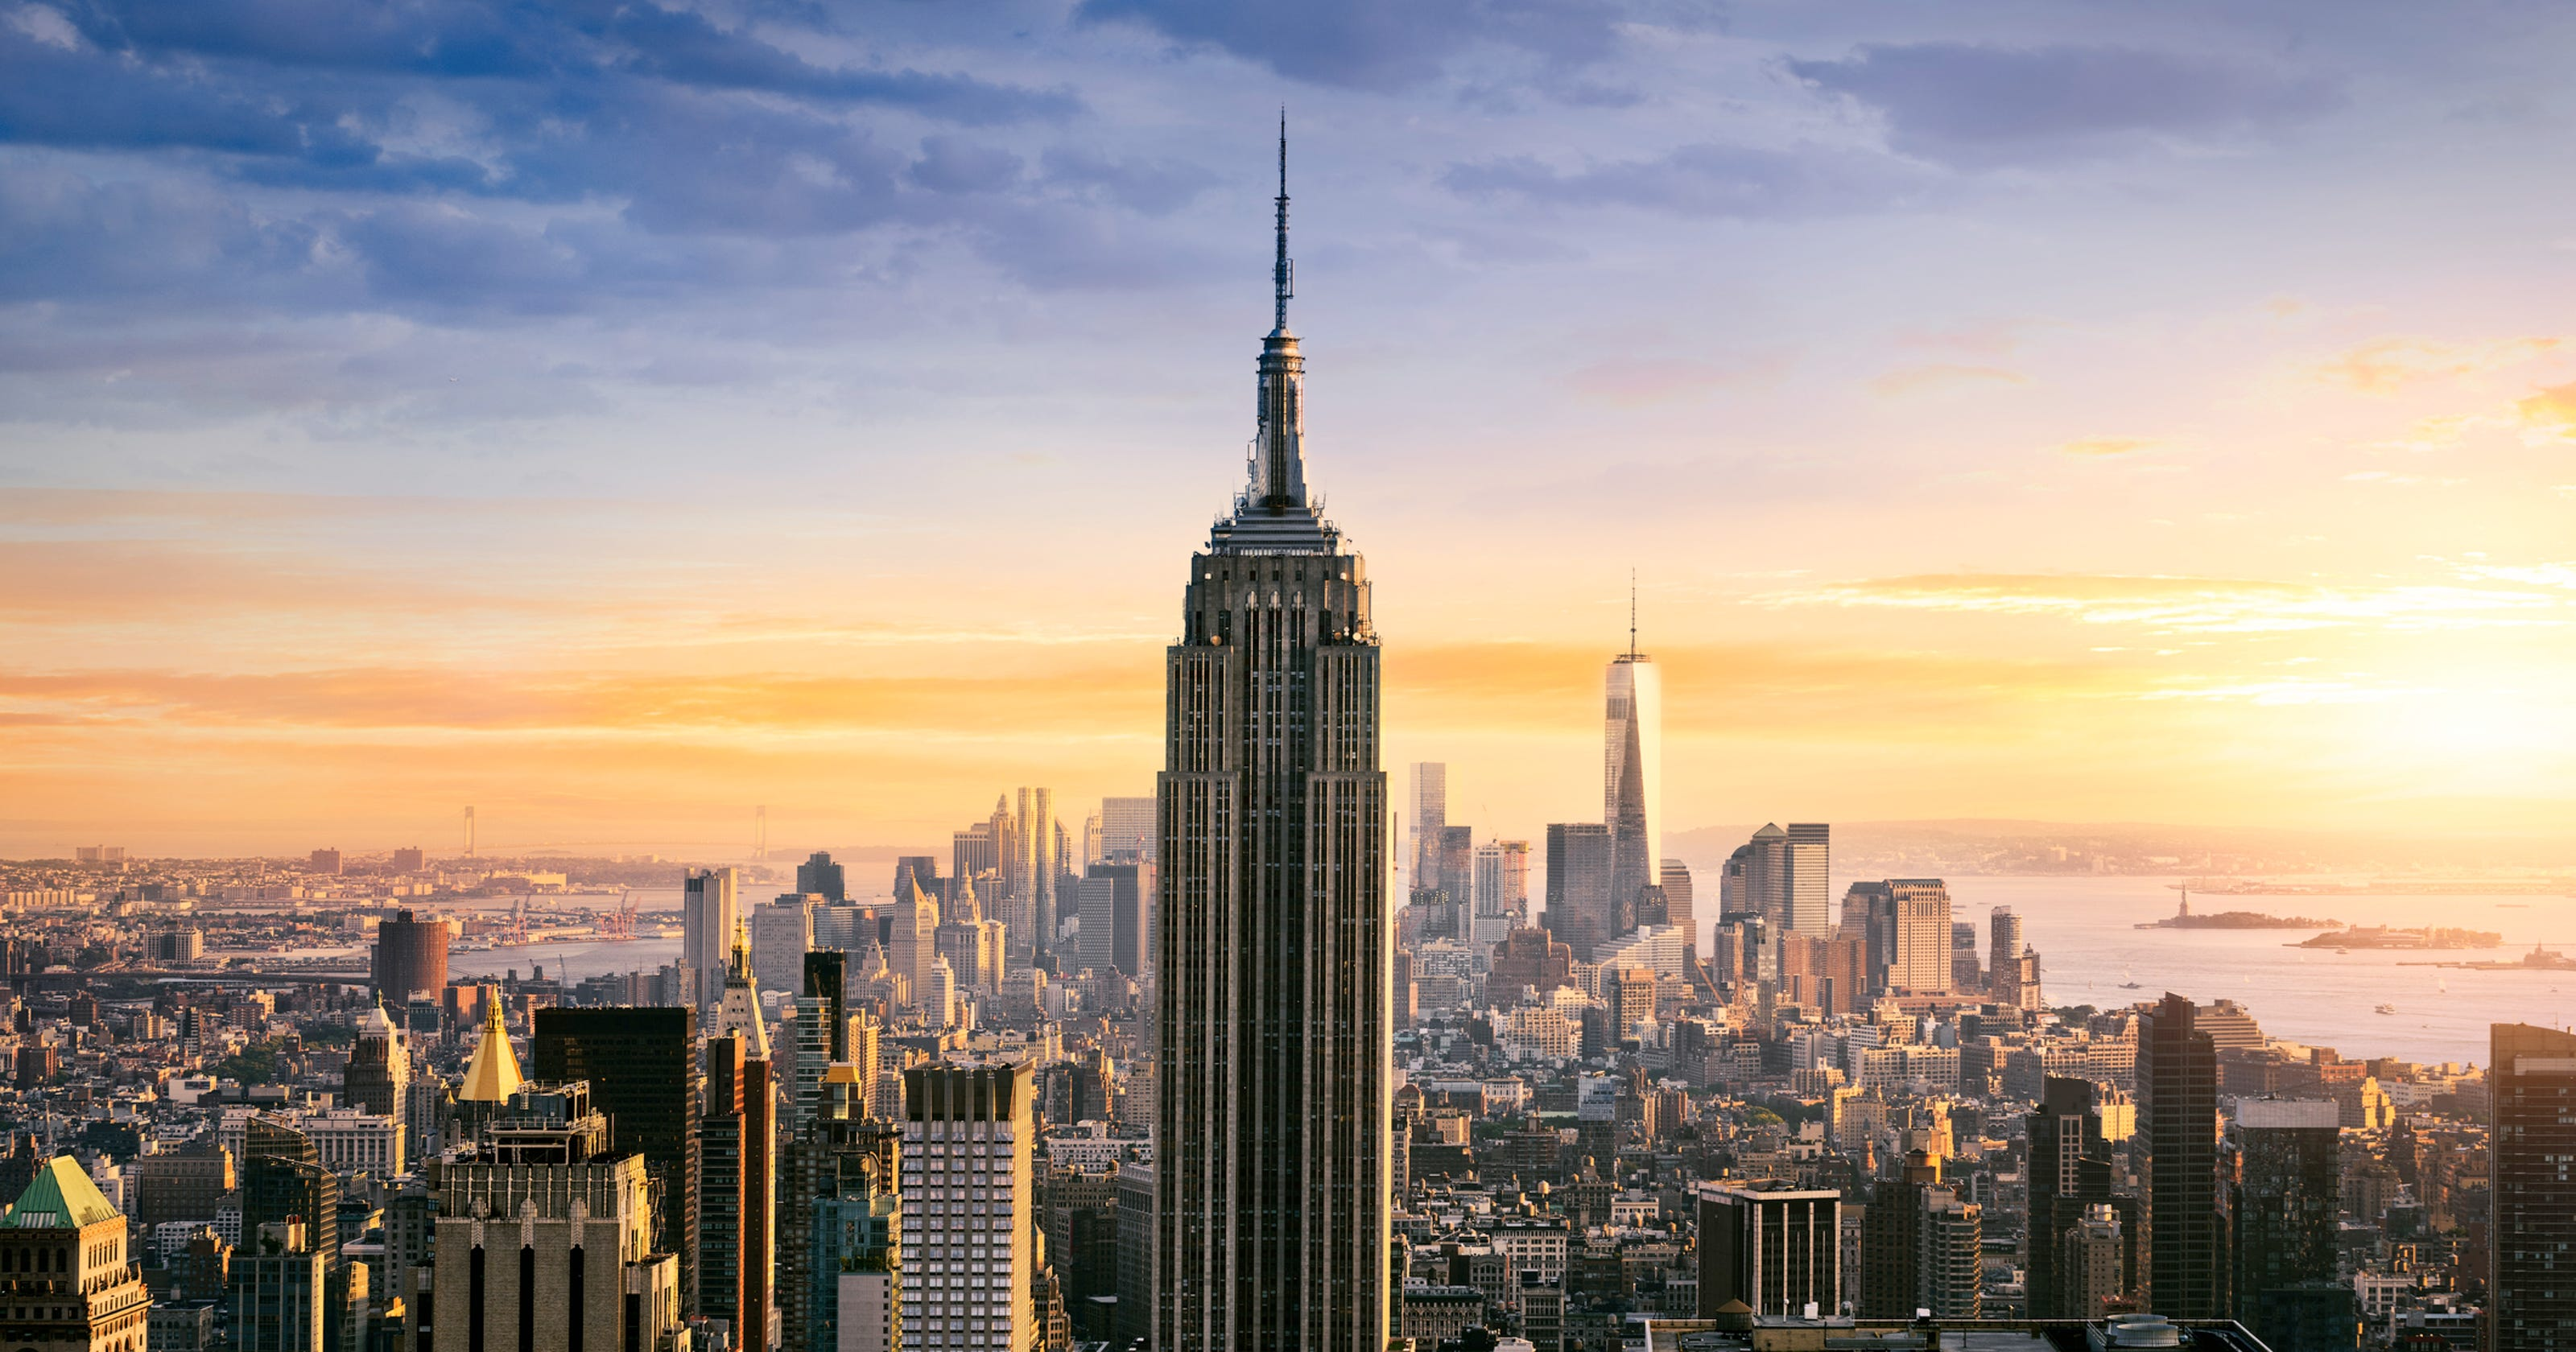 The 31 tallest buildings in the USA